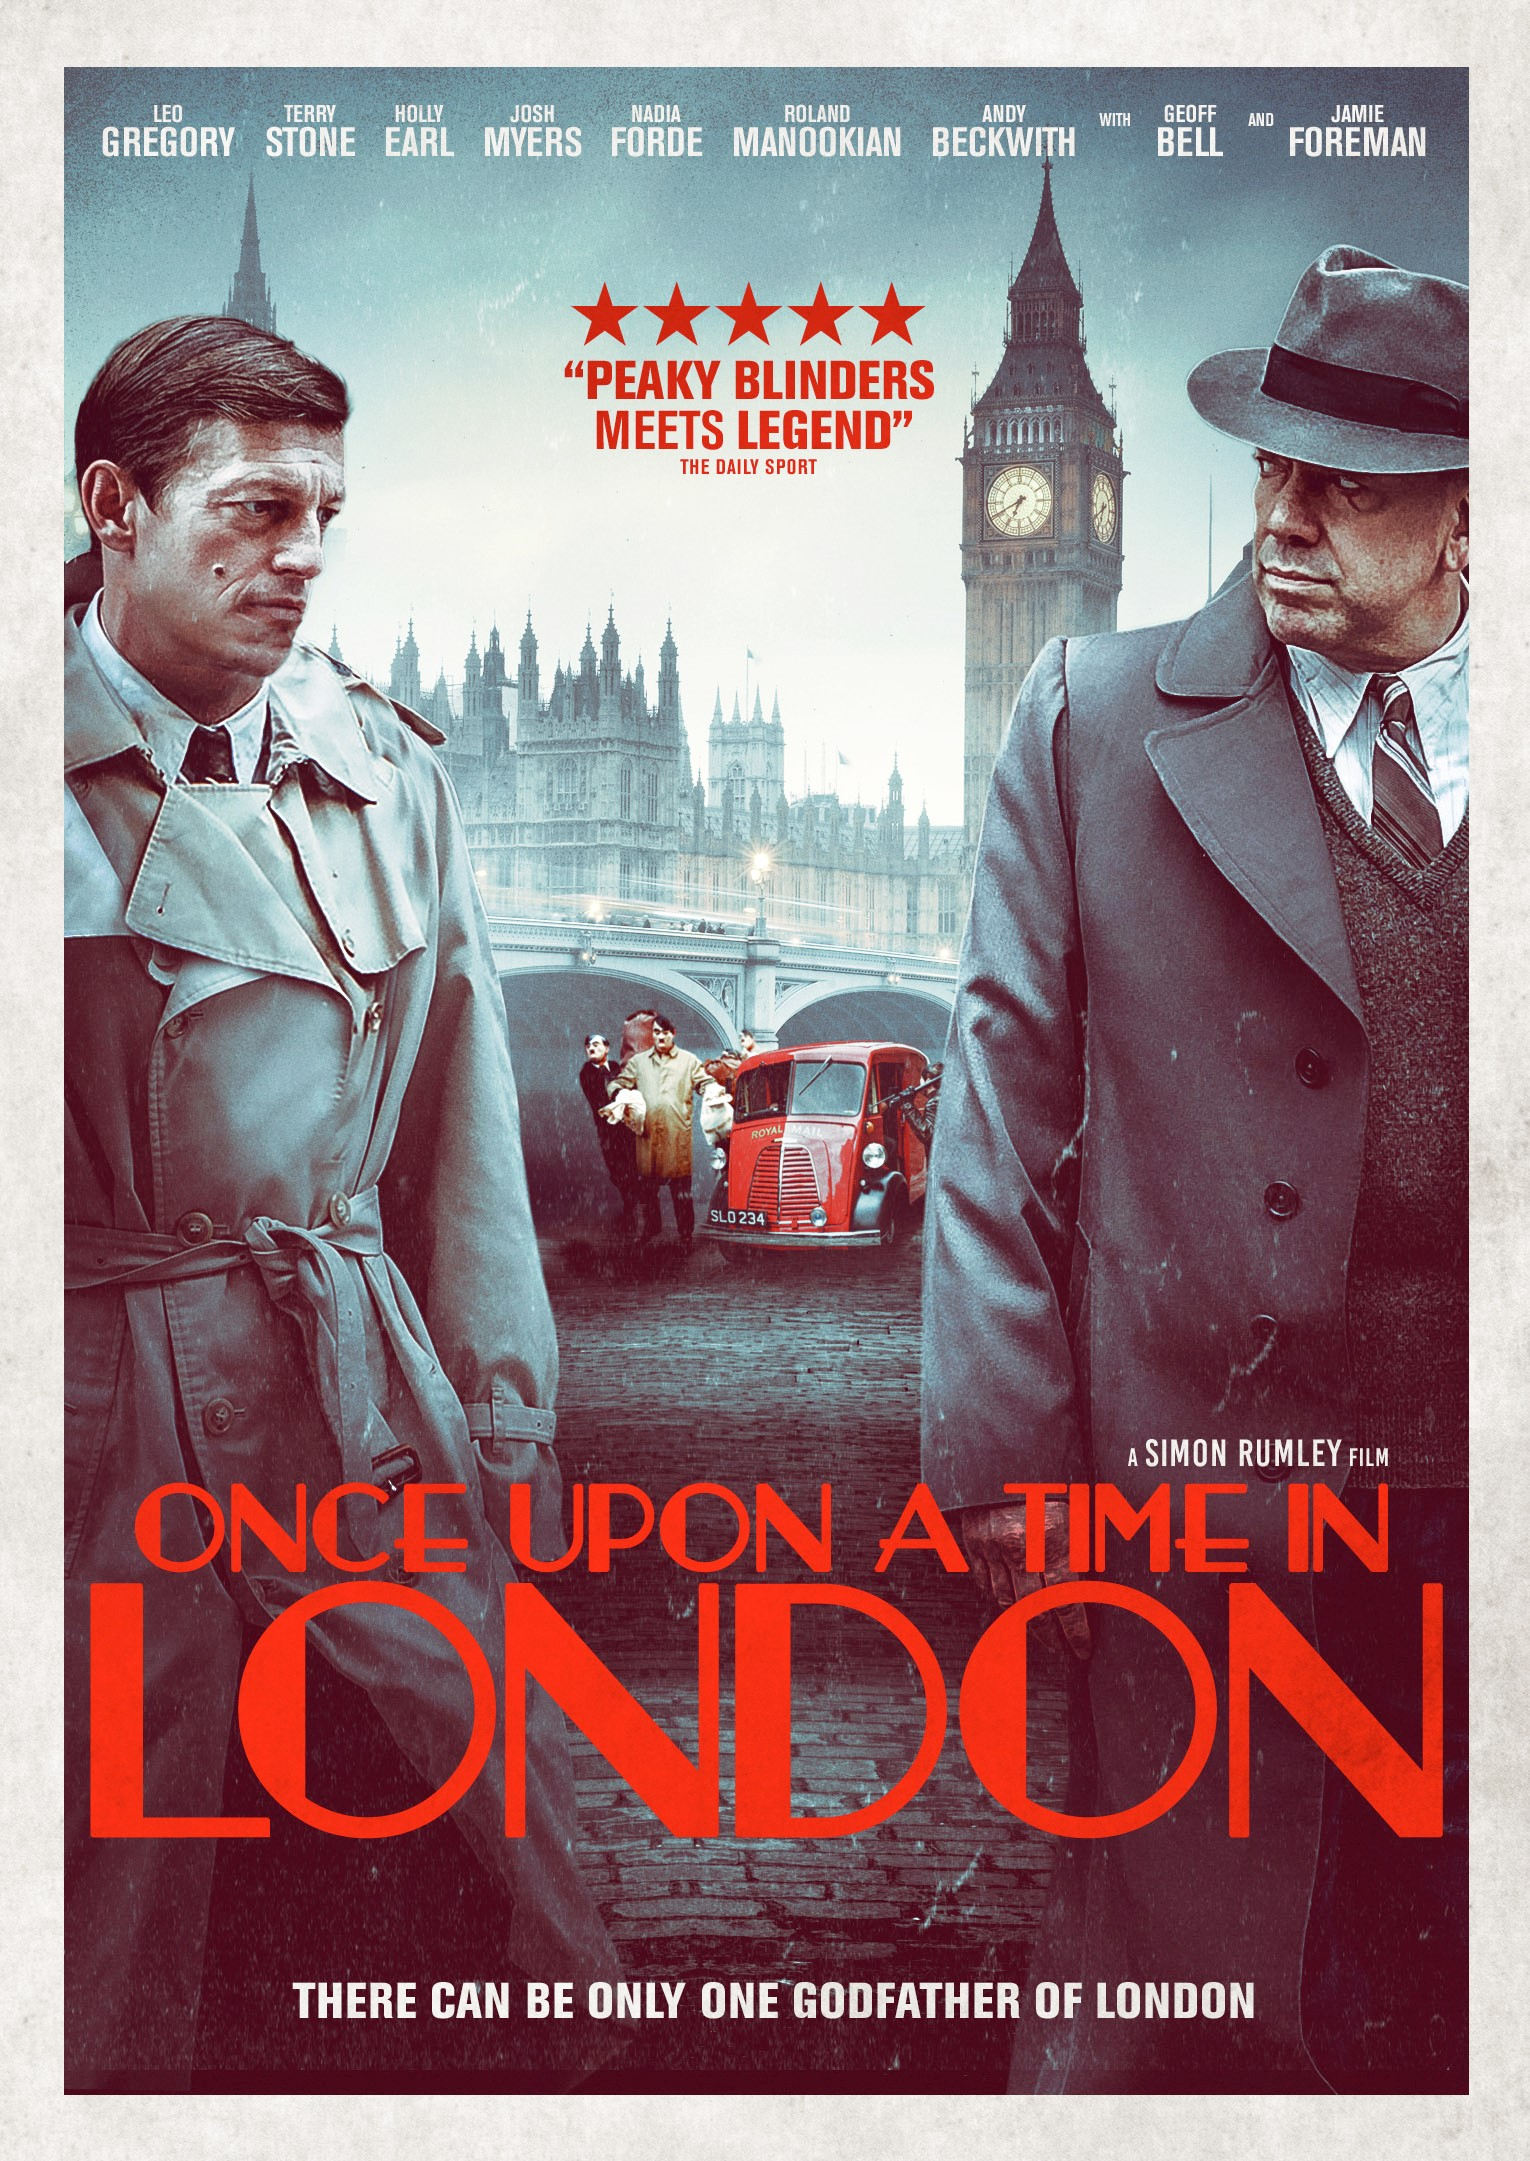 KARTĄ LONDONE (2019) / ONCE UPON A TIME IN LONDON